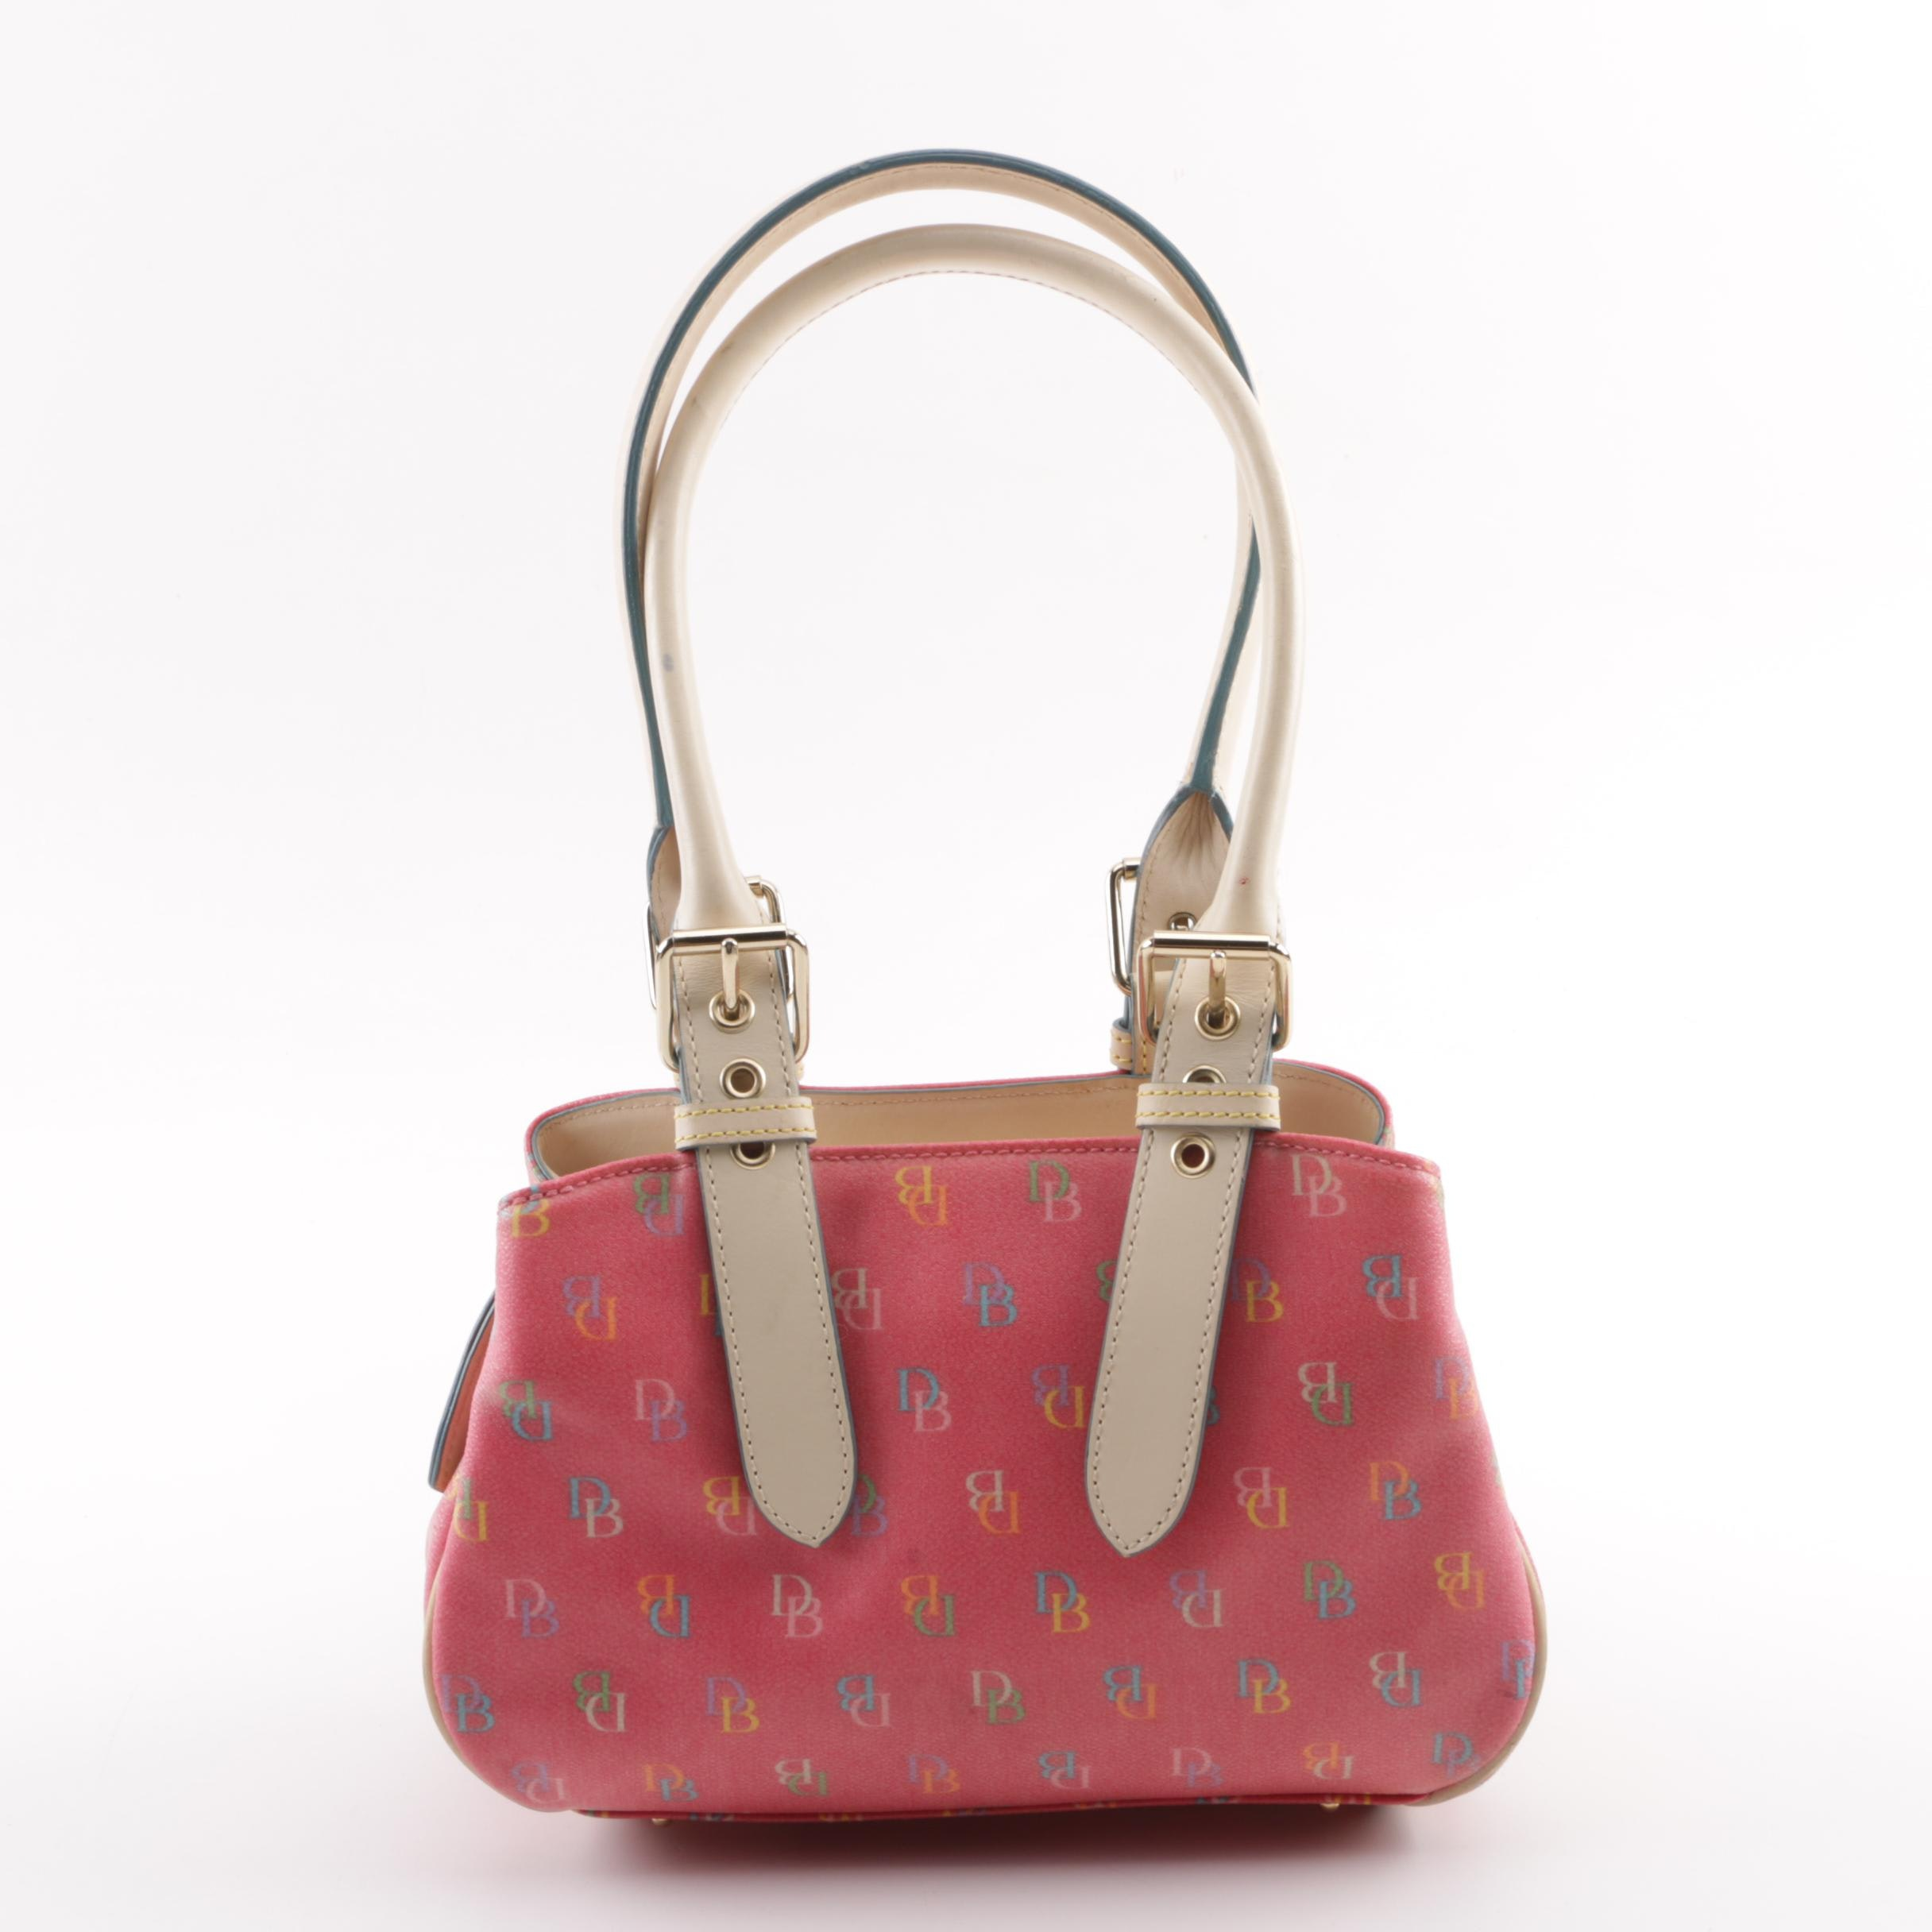 Dooney & Bourke Pink Multicolor Monogram Coated Canvas and Leather Handbag